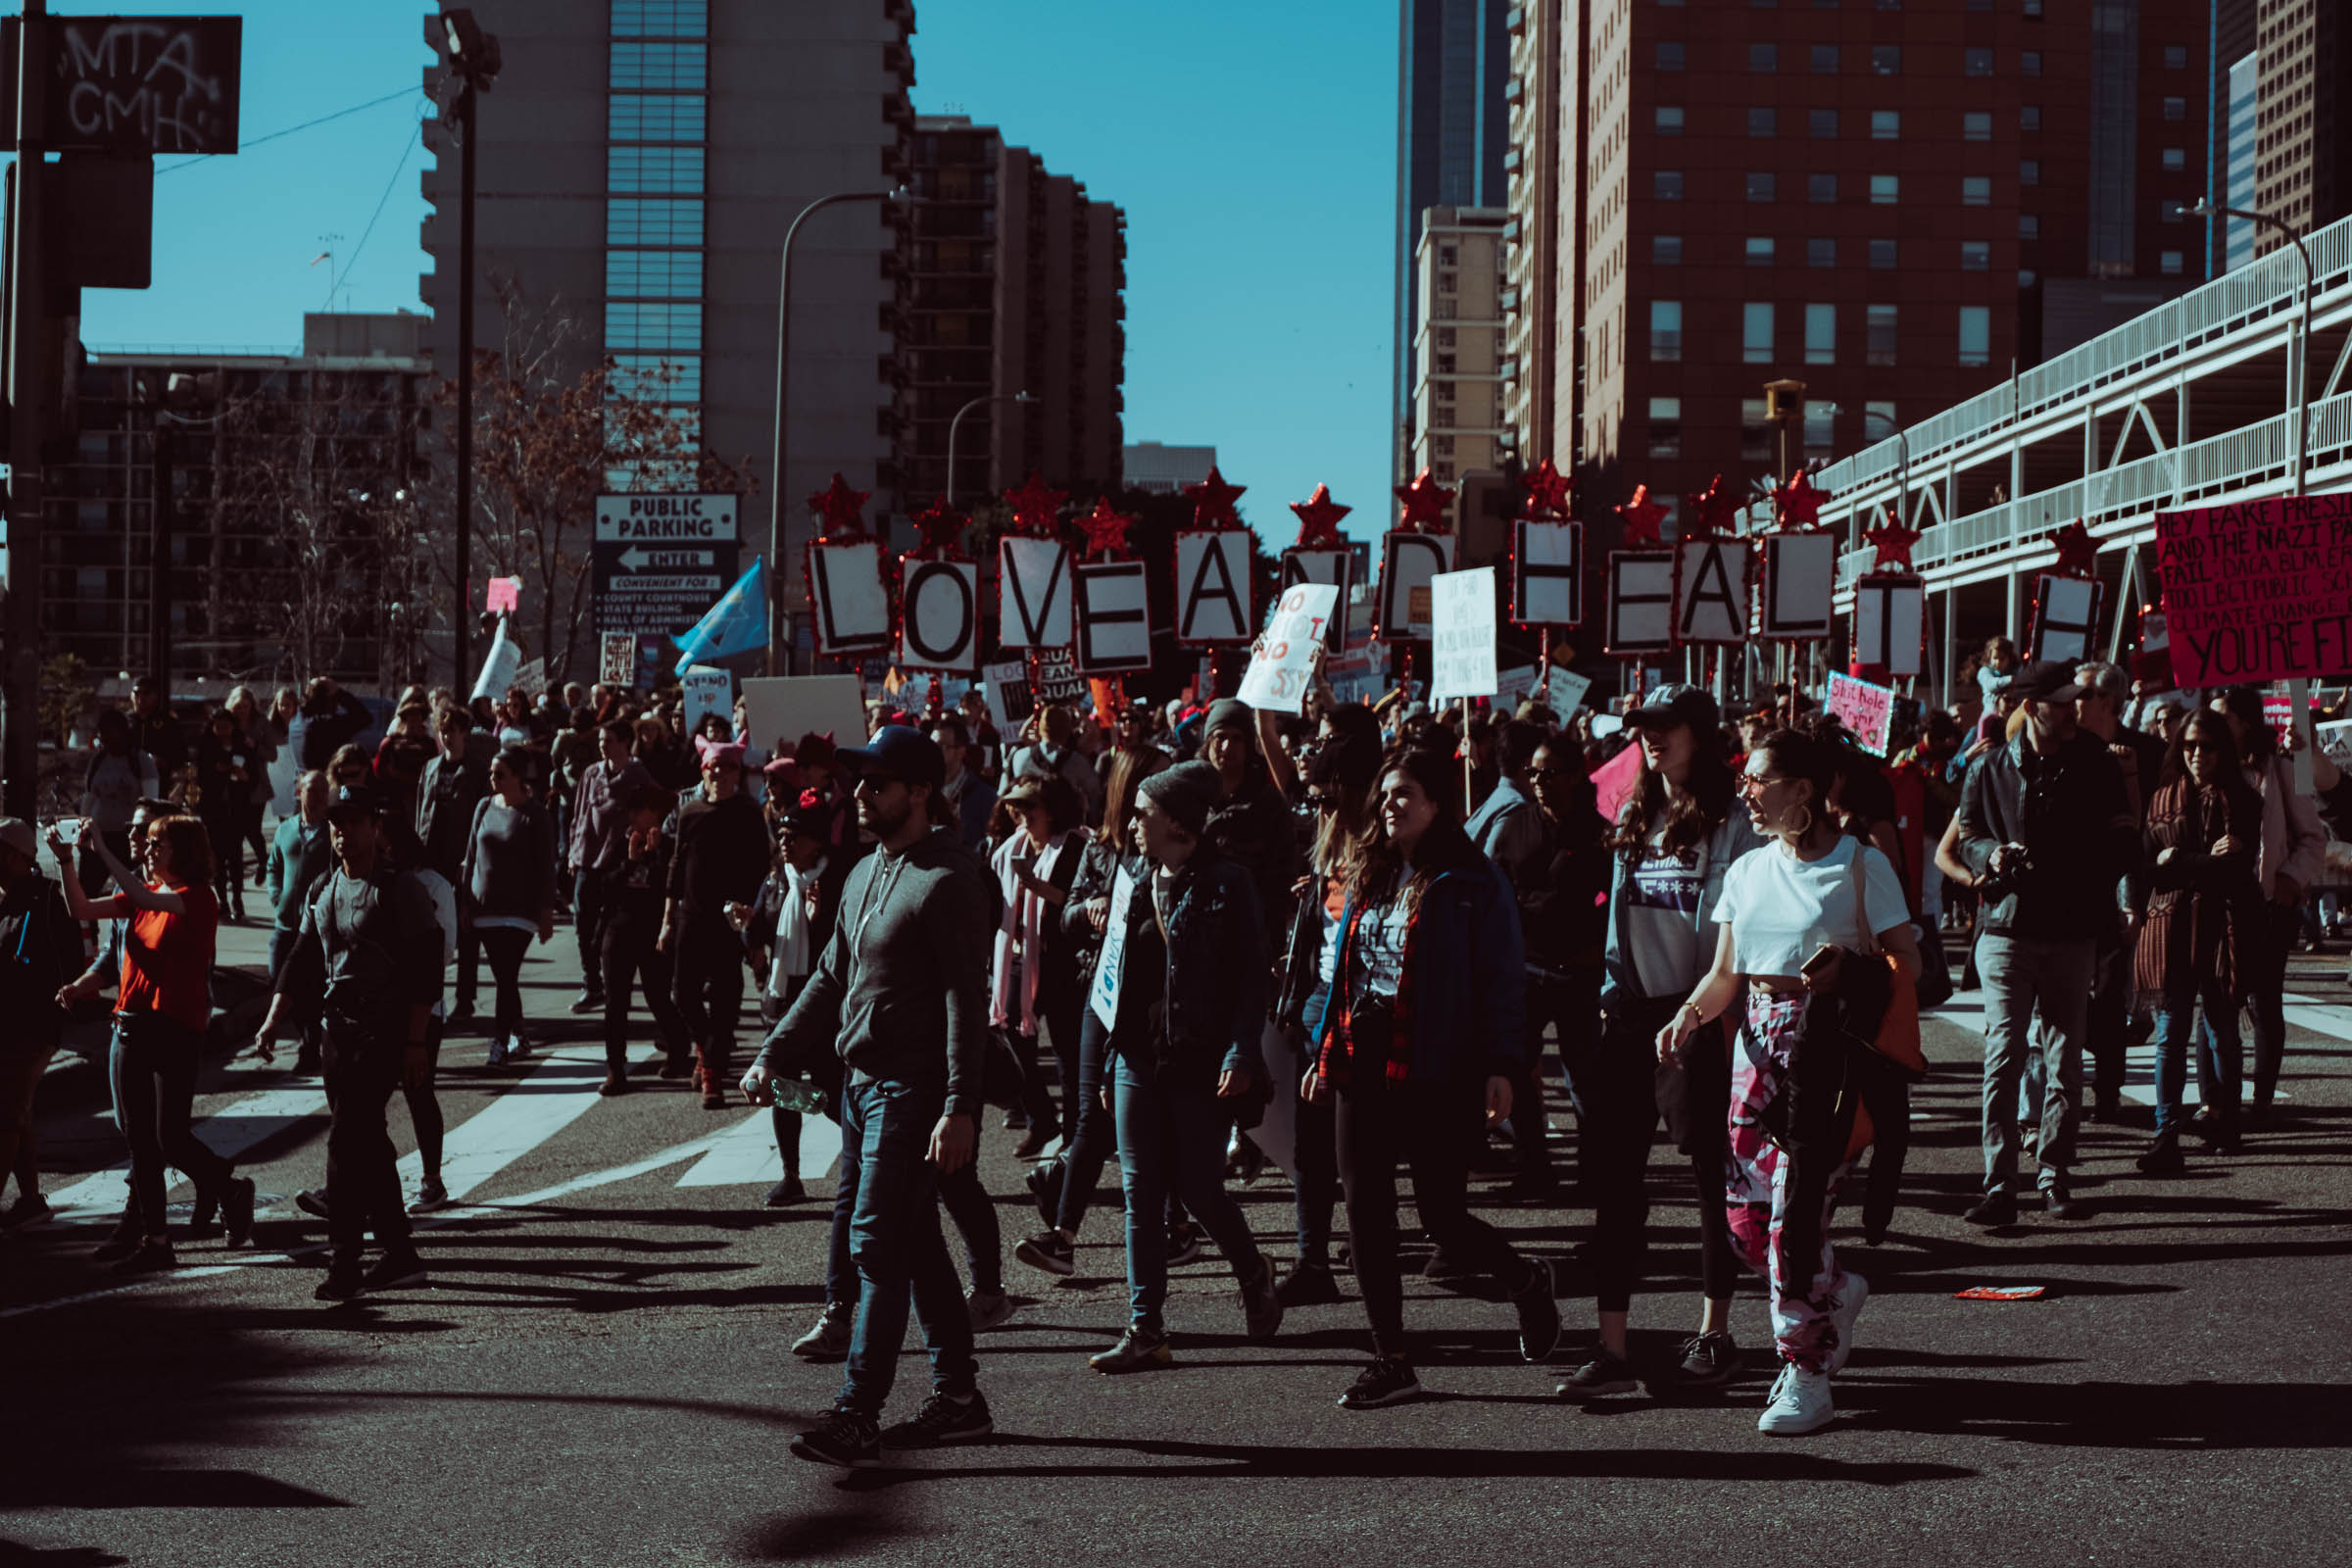 Chacon Images_WomensMarch_Web-2.jpg